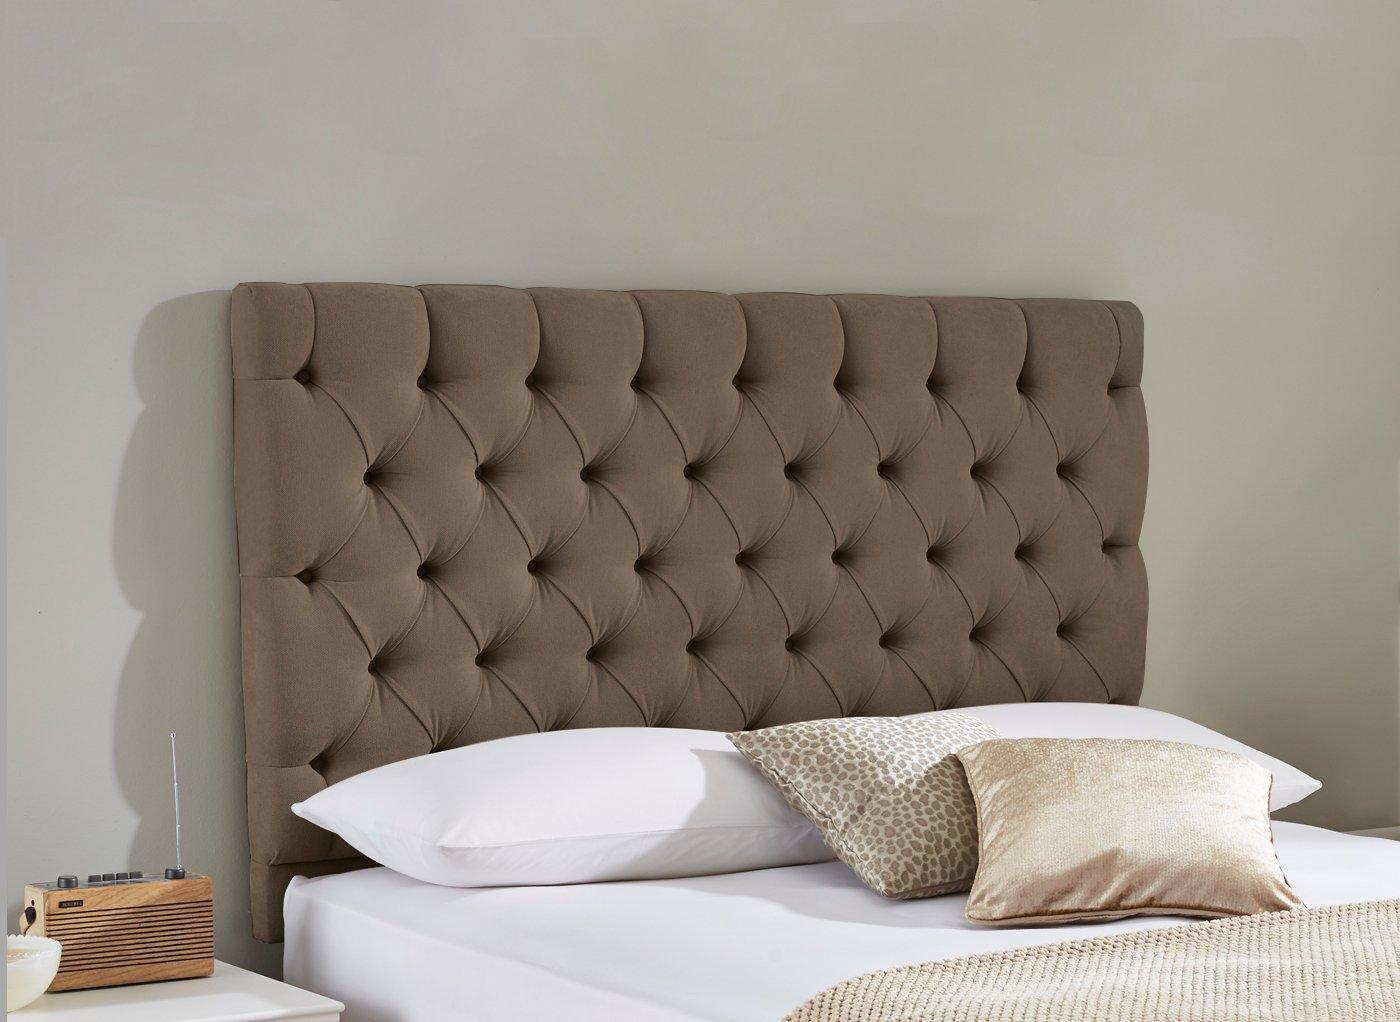 Harrogate Headboard 3'0 Single BROWN